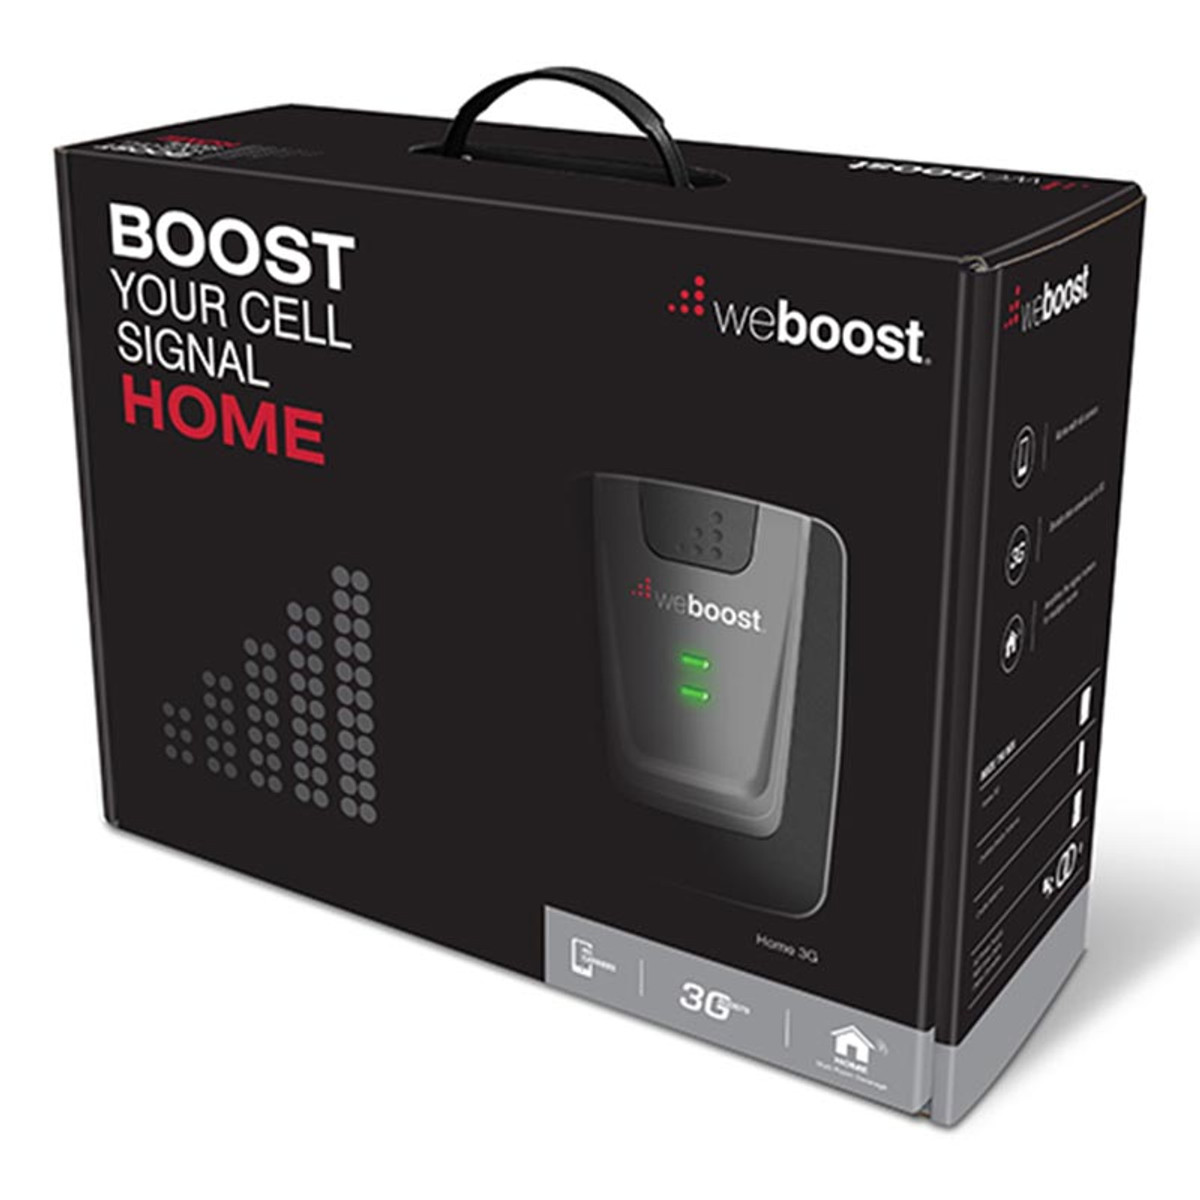 weBoost Home 3G Cell Phone Signal Booster | 473105 box